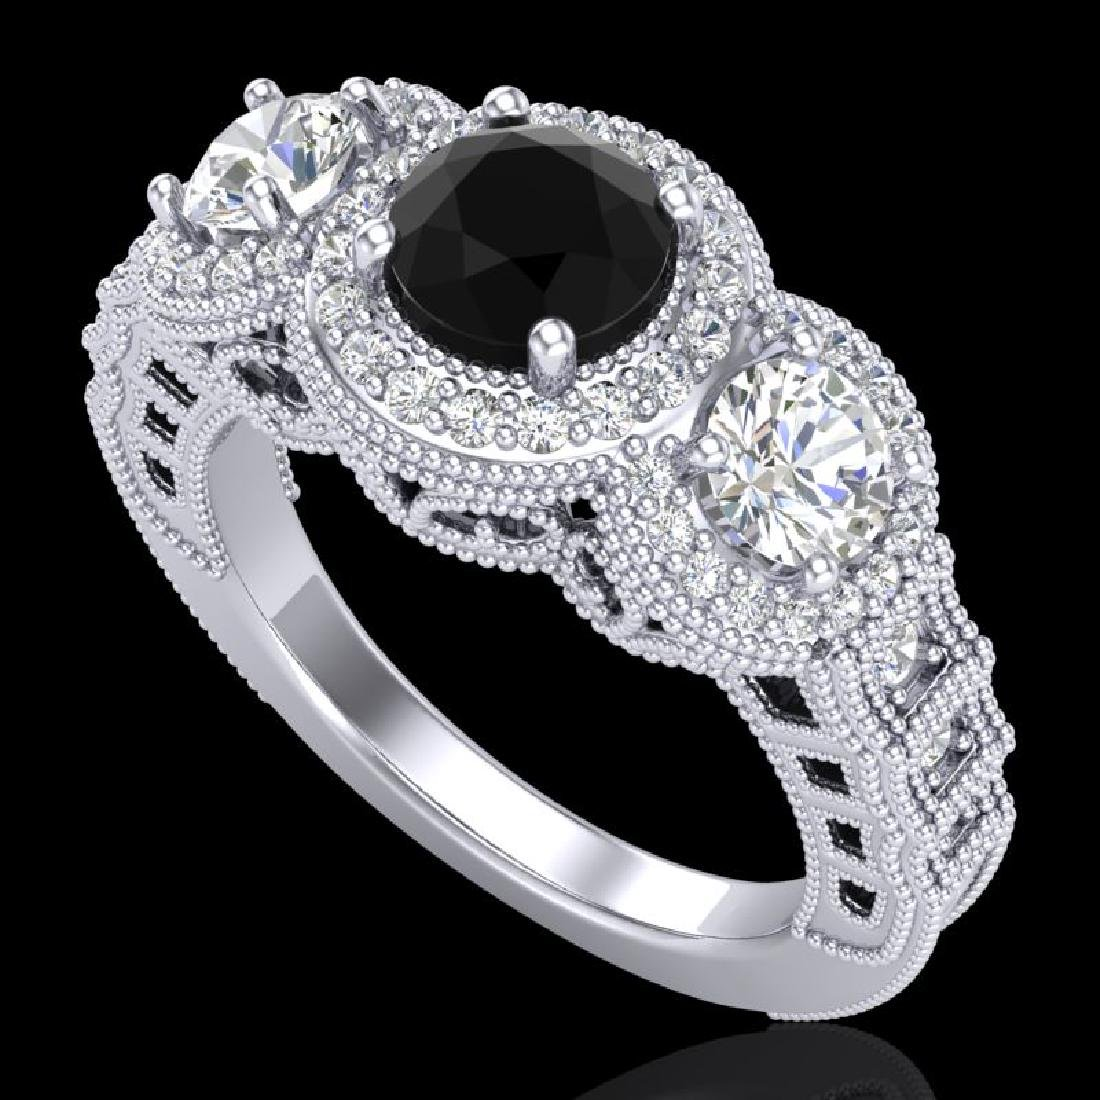 2.16 CTW Fancy Black Diamond Solitaire Art Deco 3 Stone